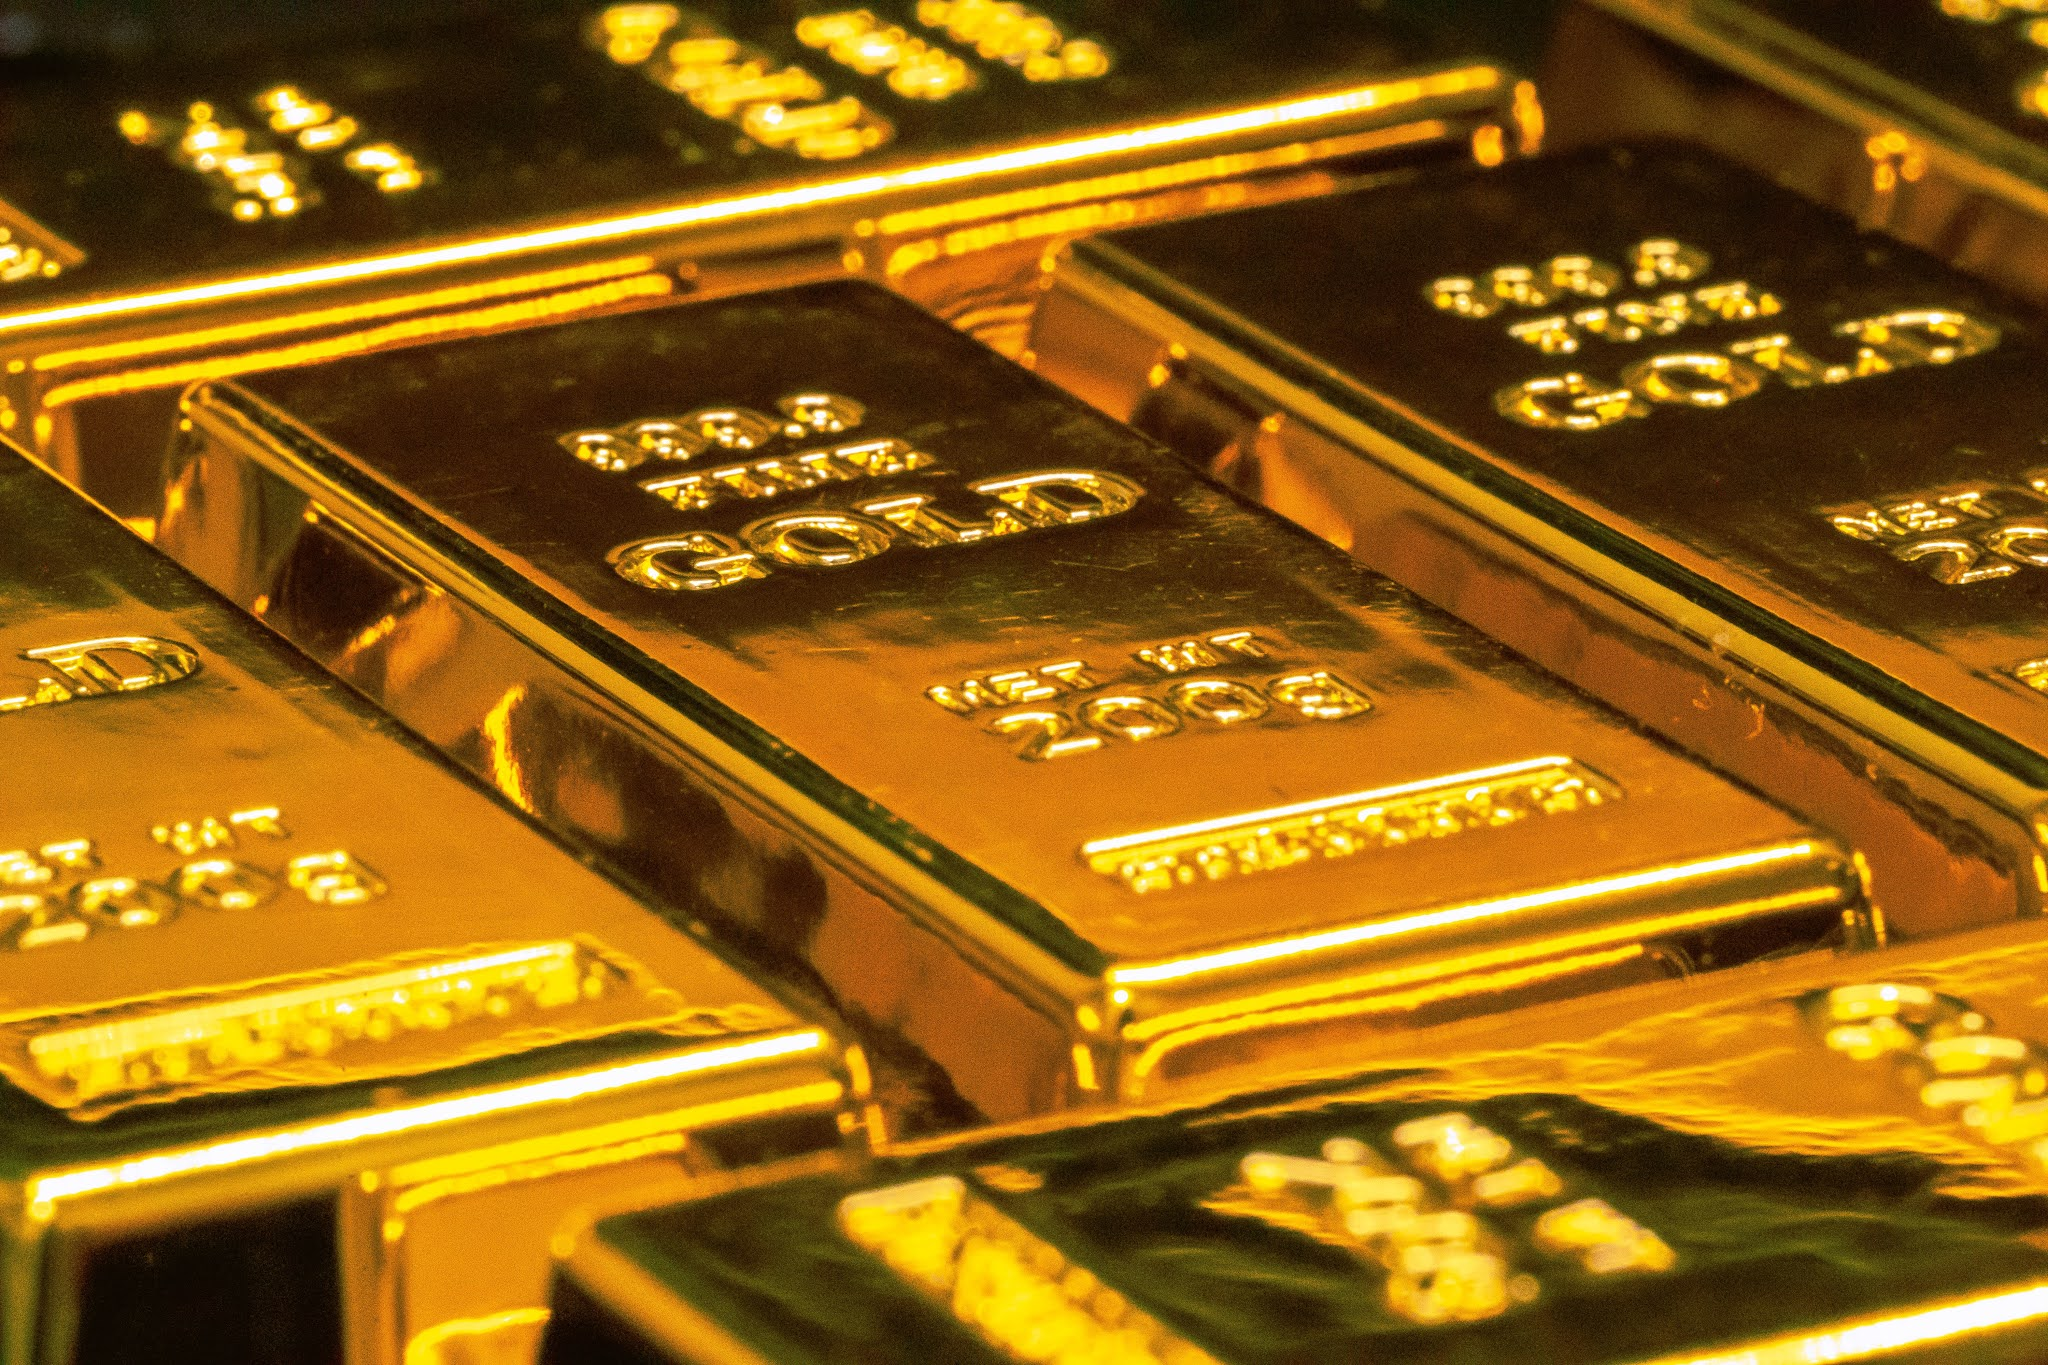 GOLD, SILVER & OTHER COMMODITIES